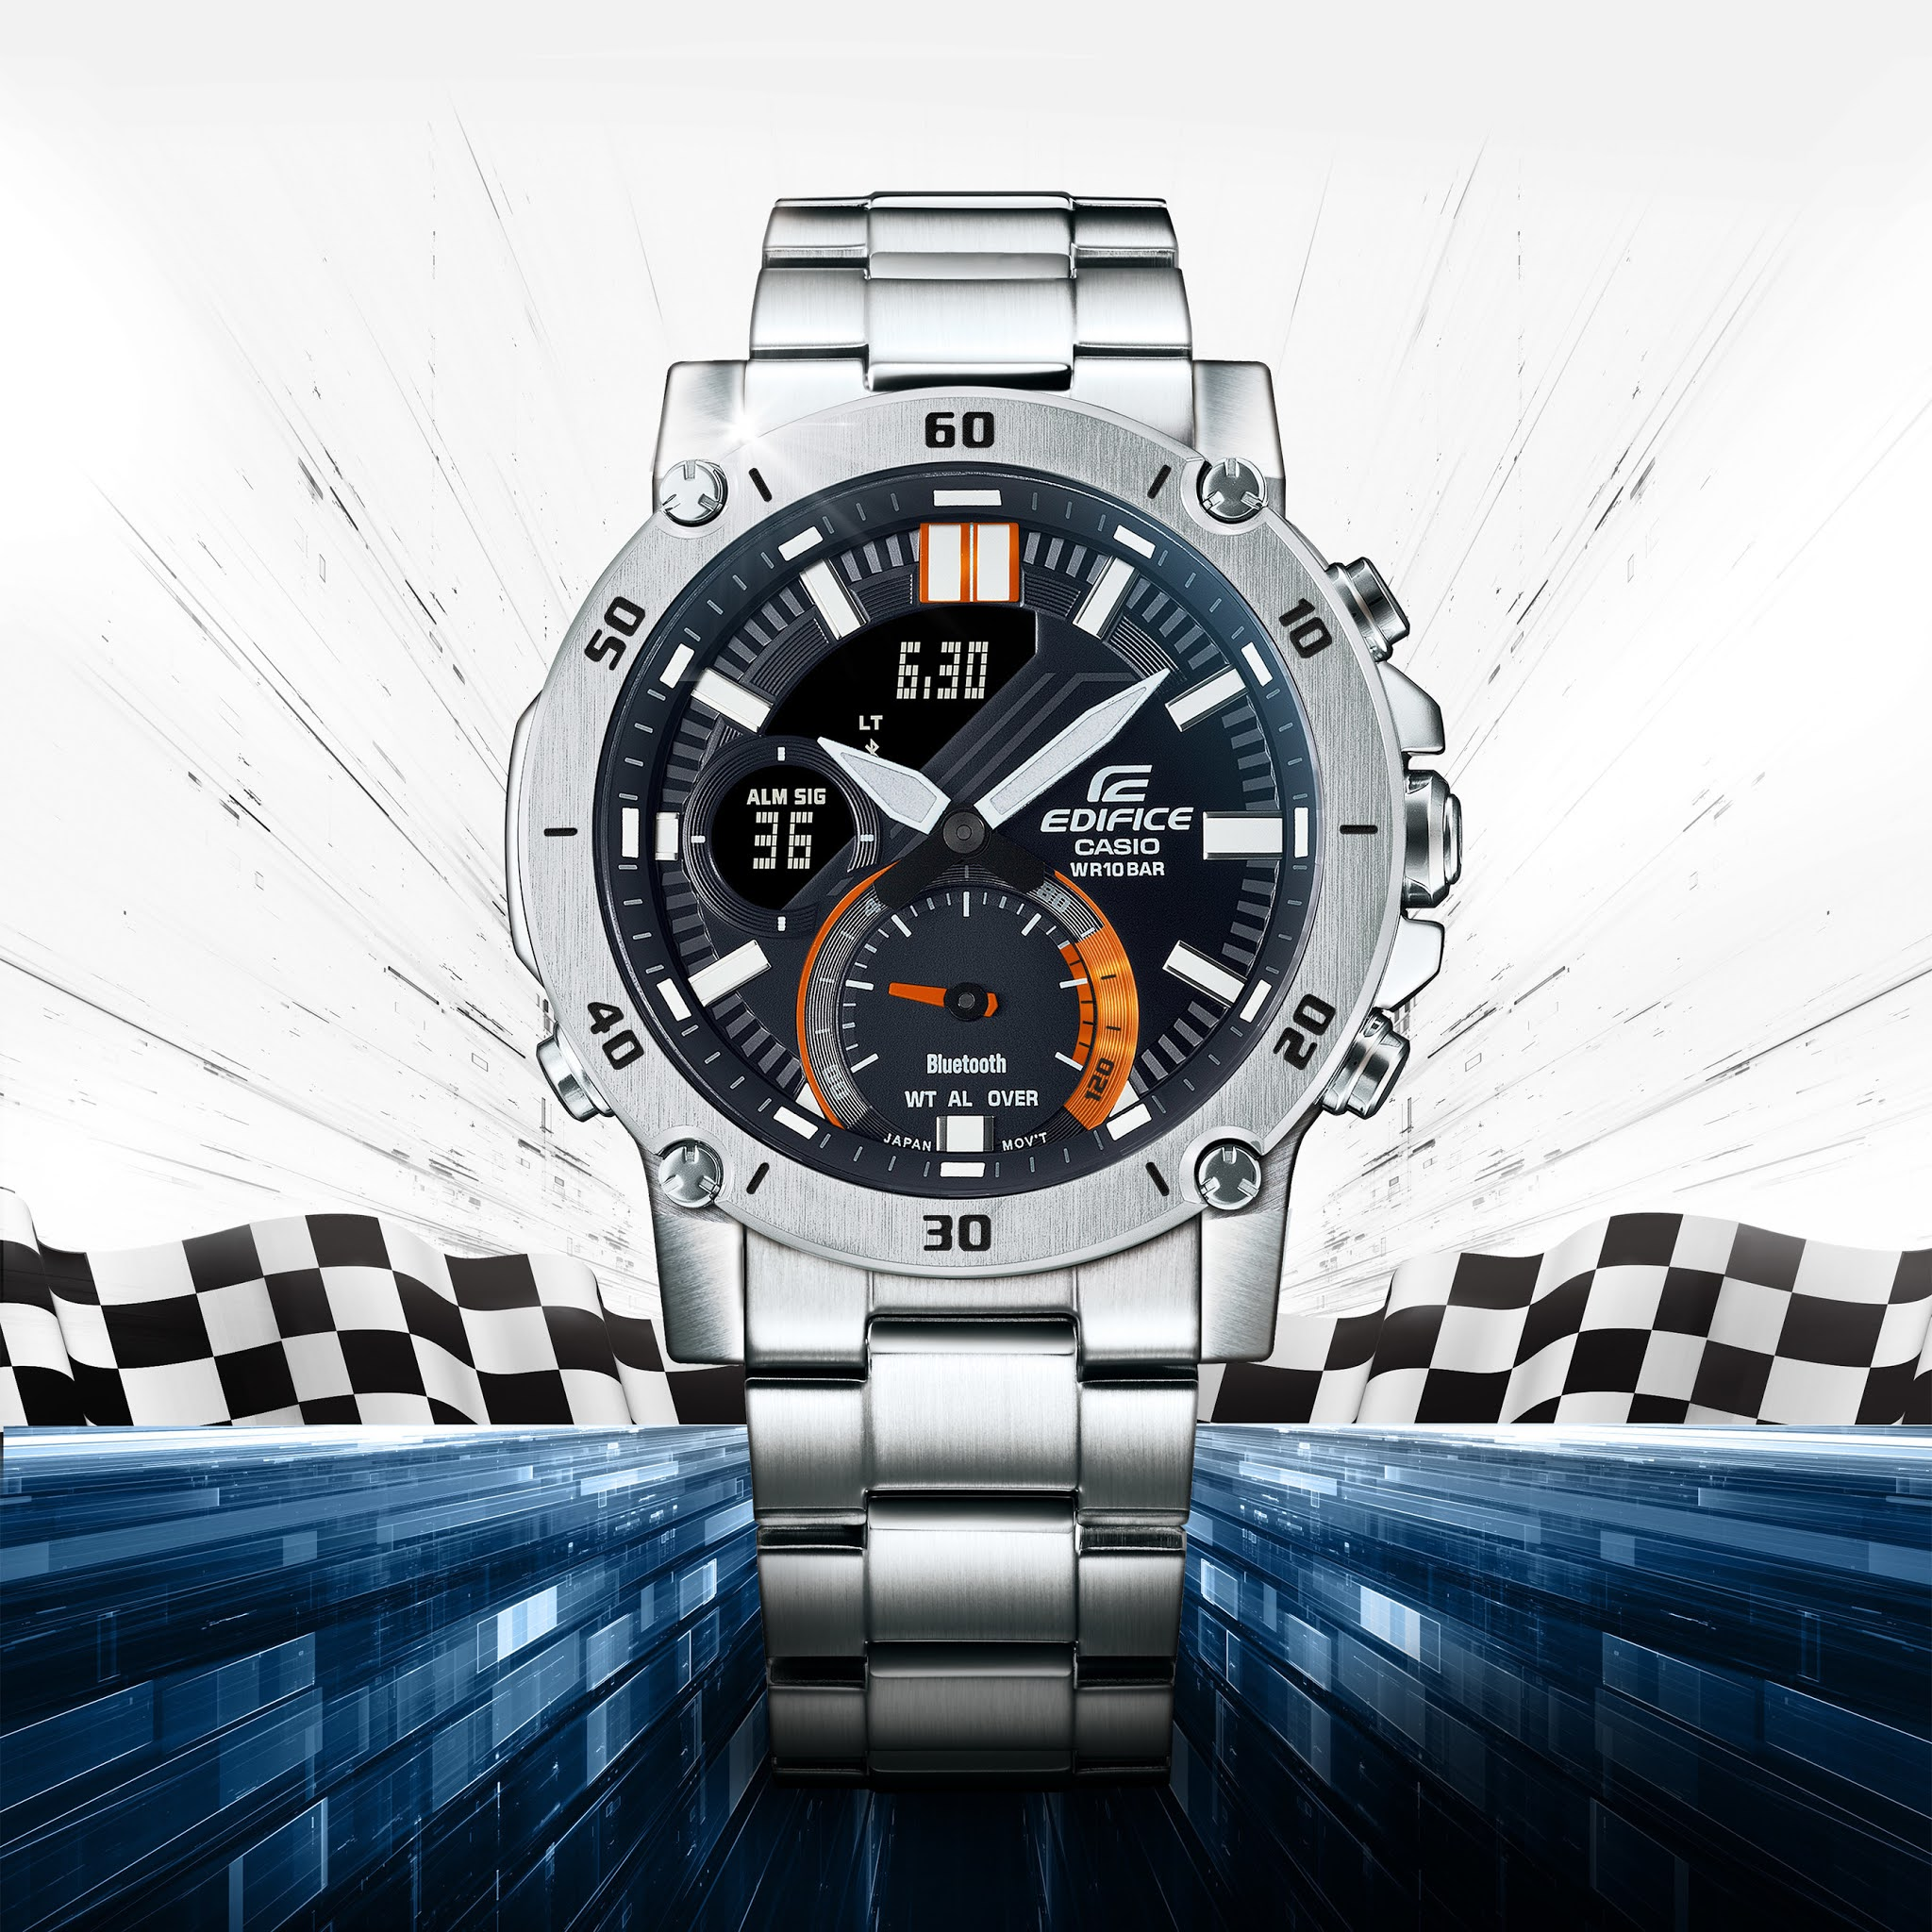 Casio Expands EDIFICE Collection With New Connected Timepieces